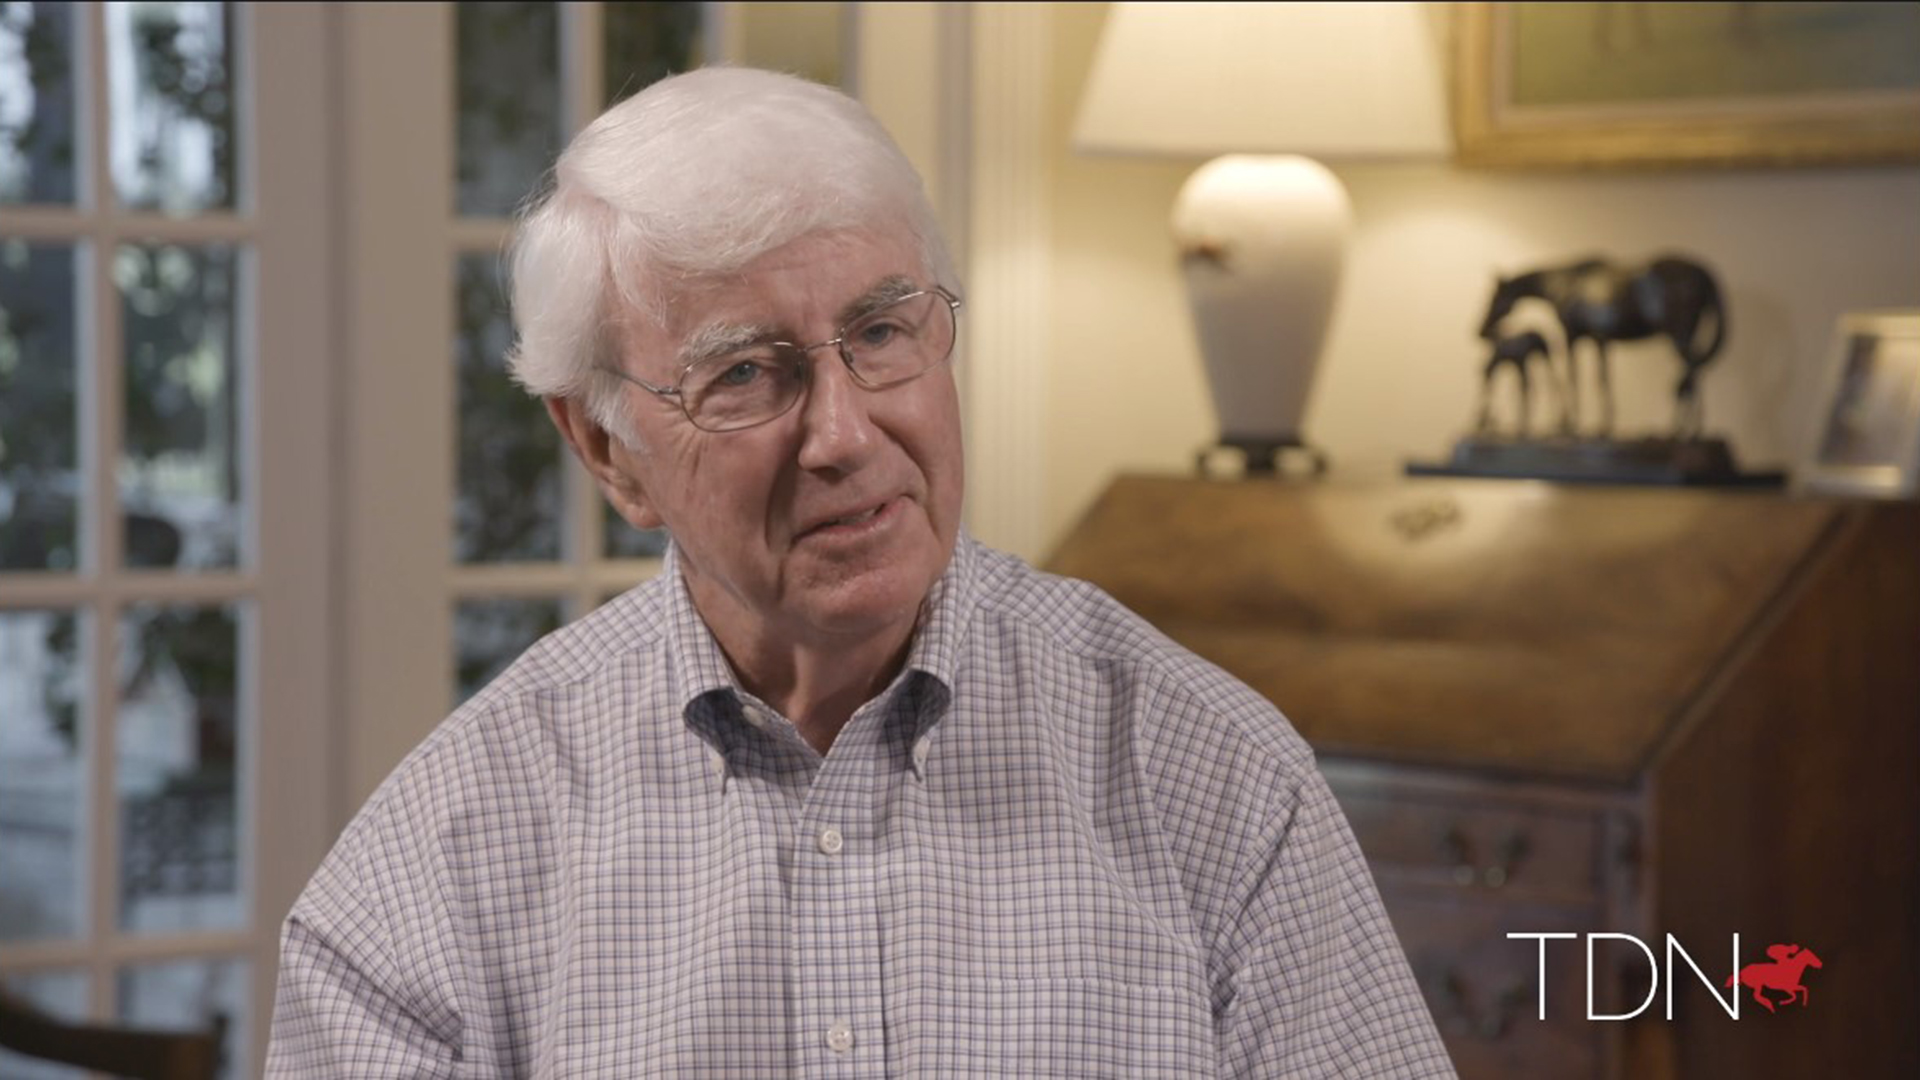 Keeneland 'Life's Work' Oral History Project, No. 7: John Williams